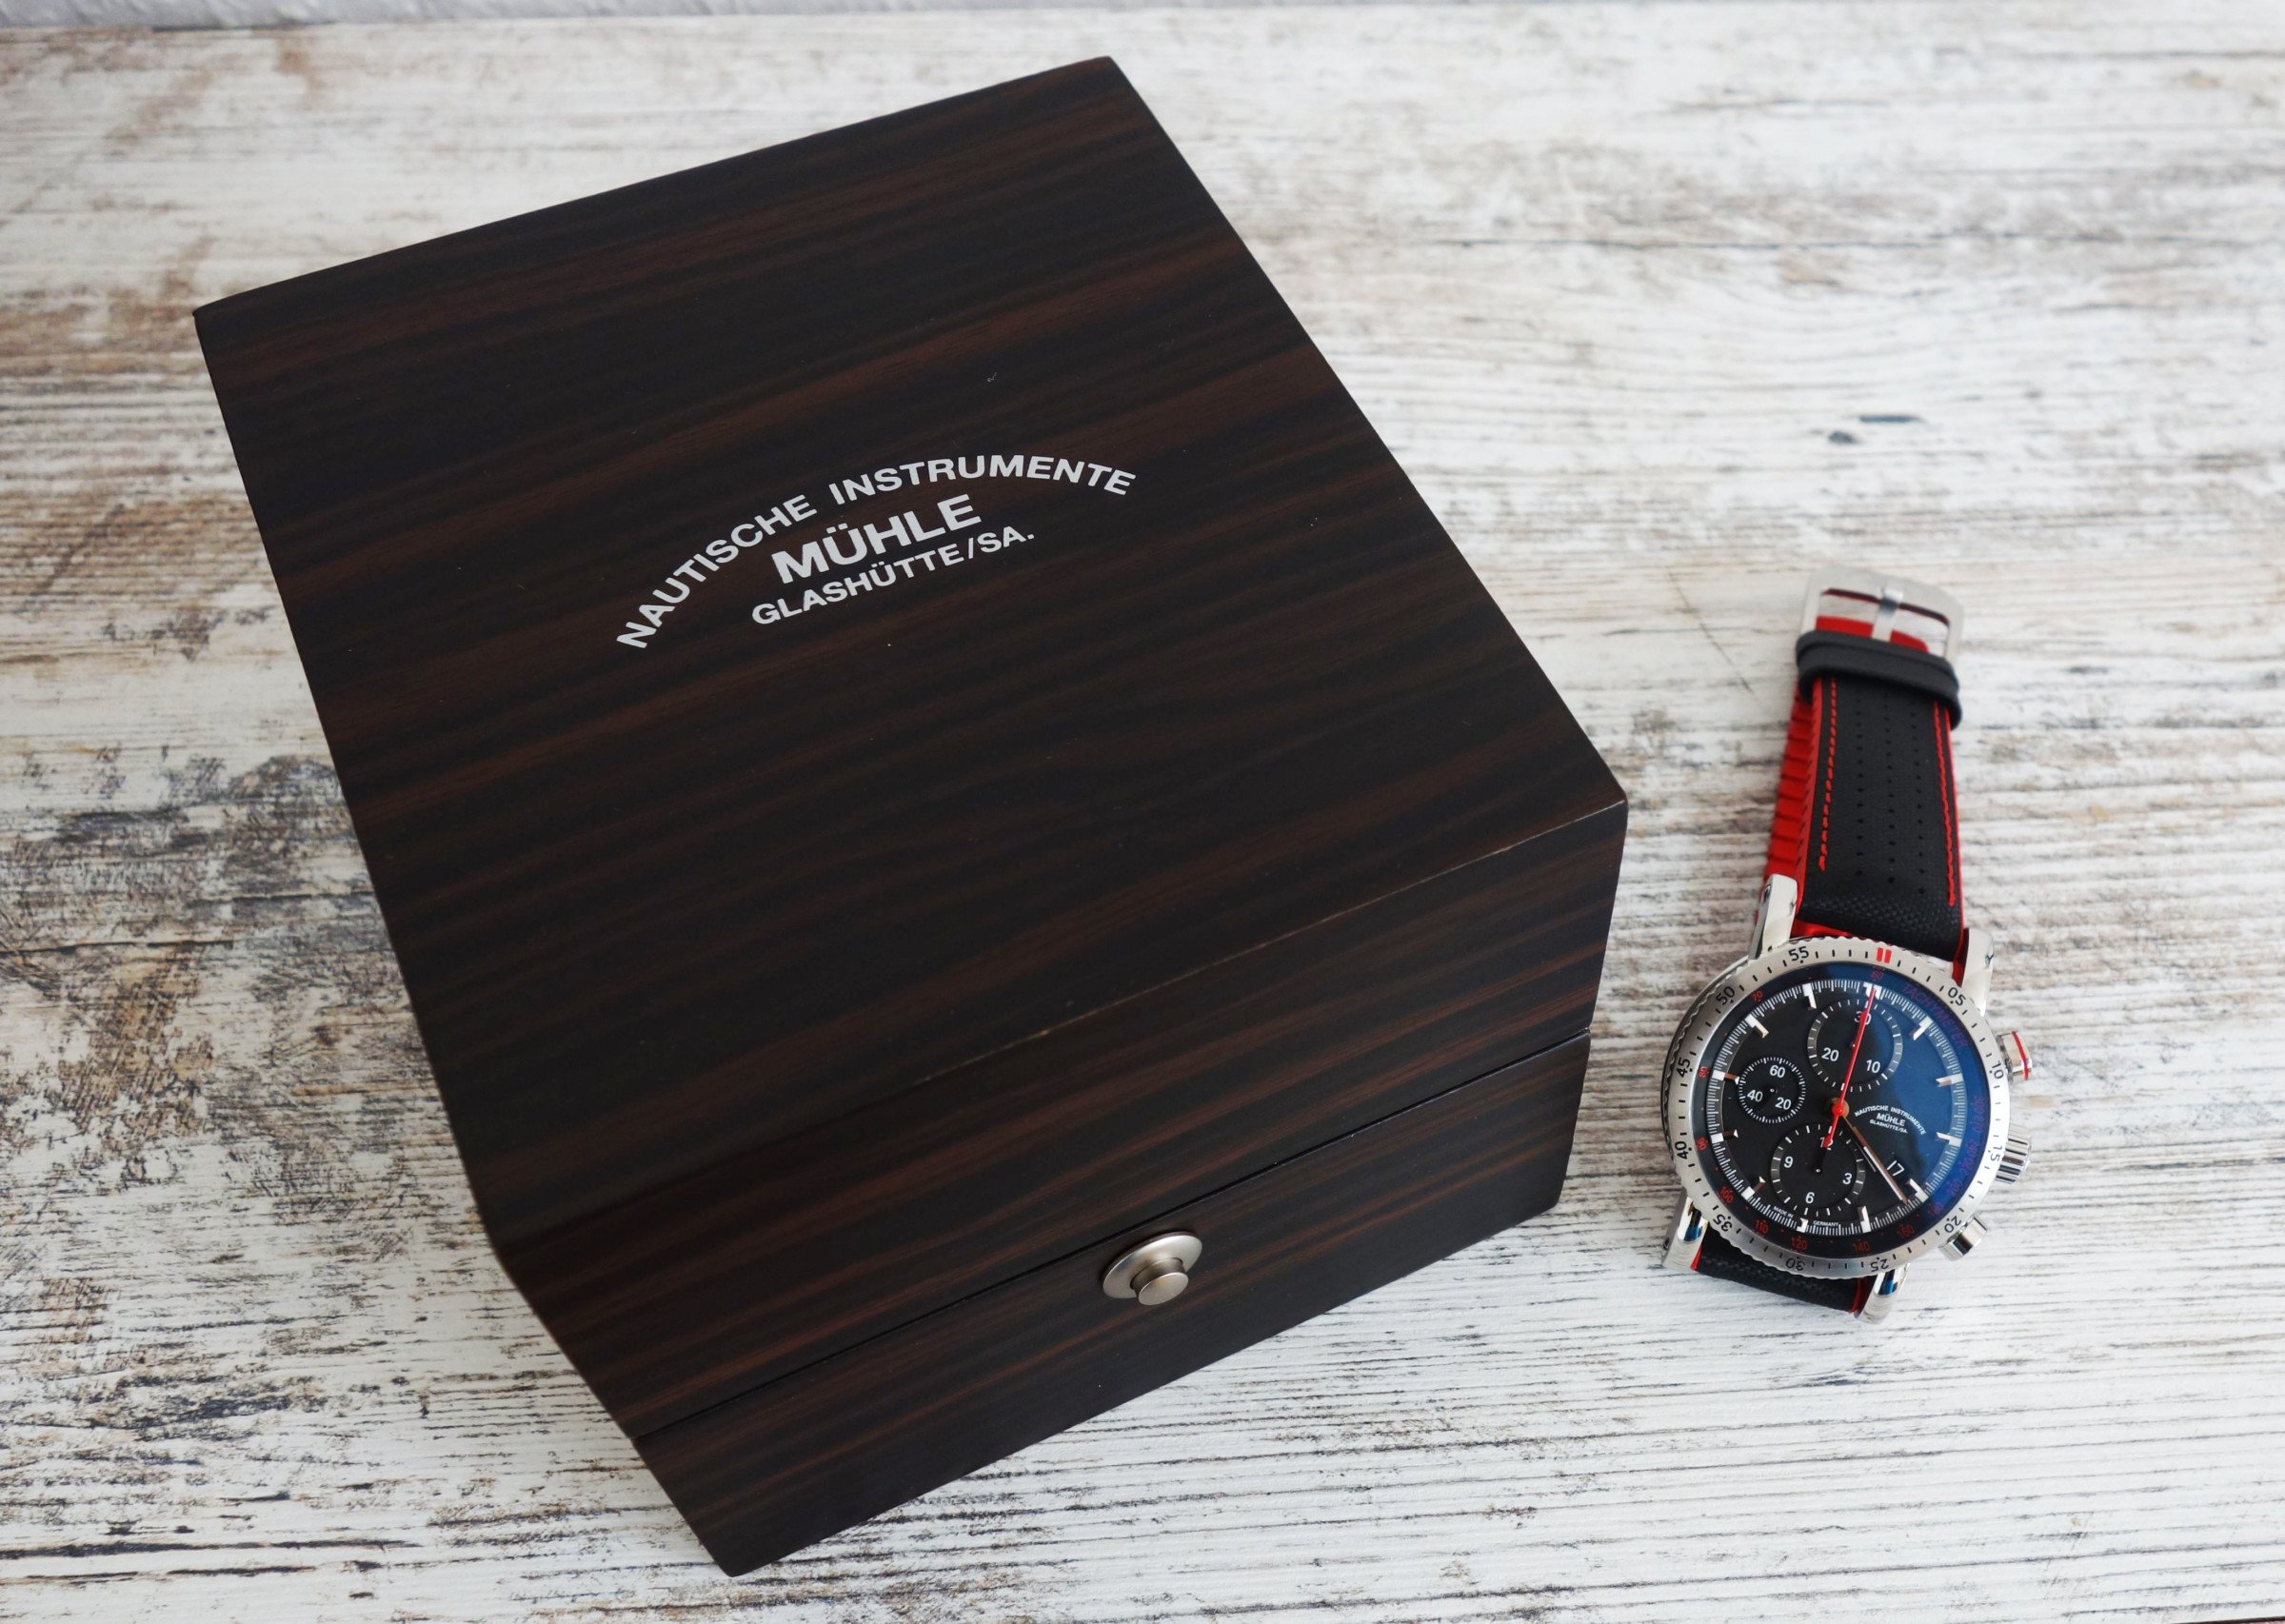 Mühle Glashütte Box Chronograph